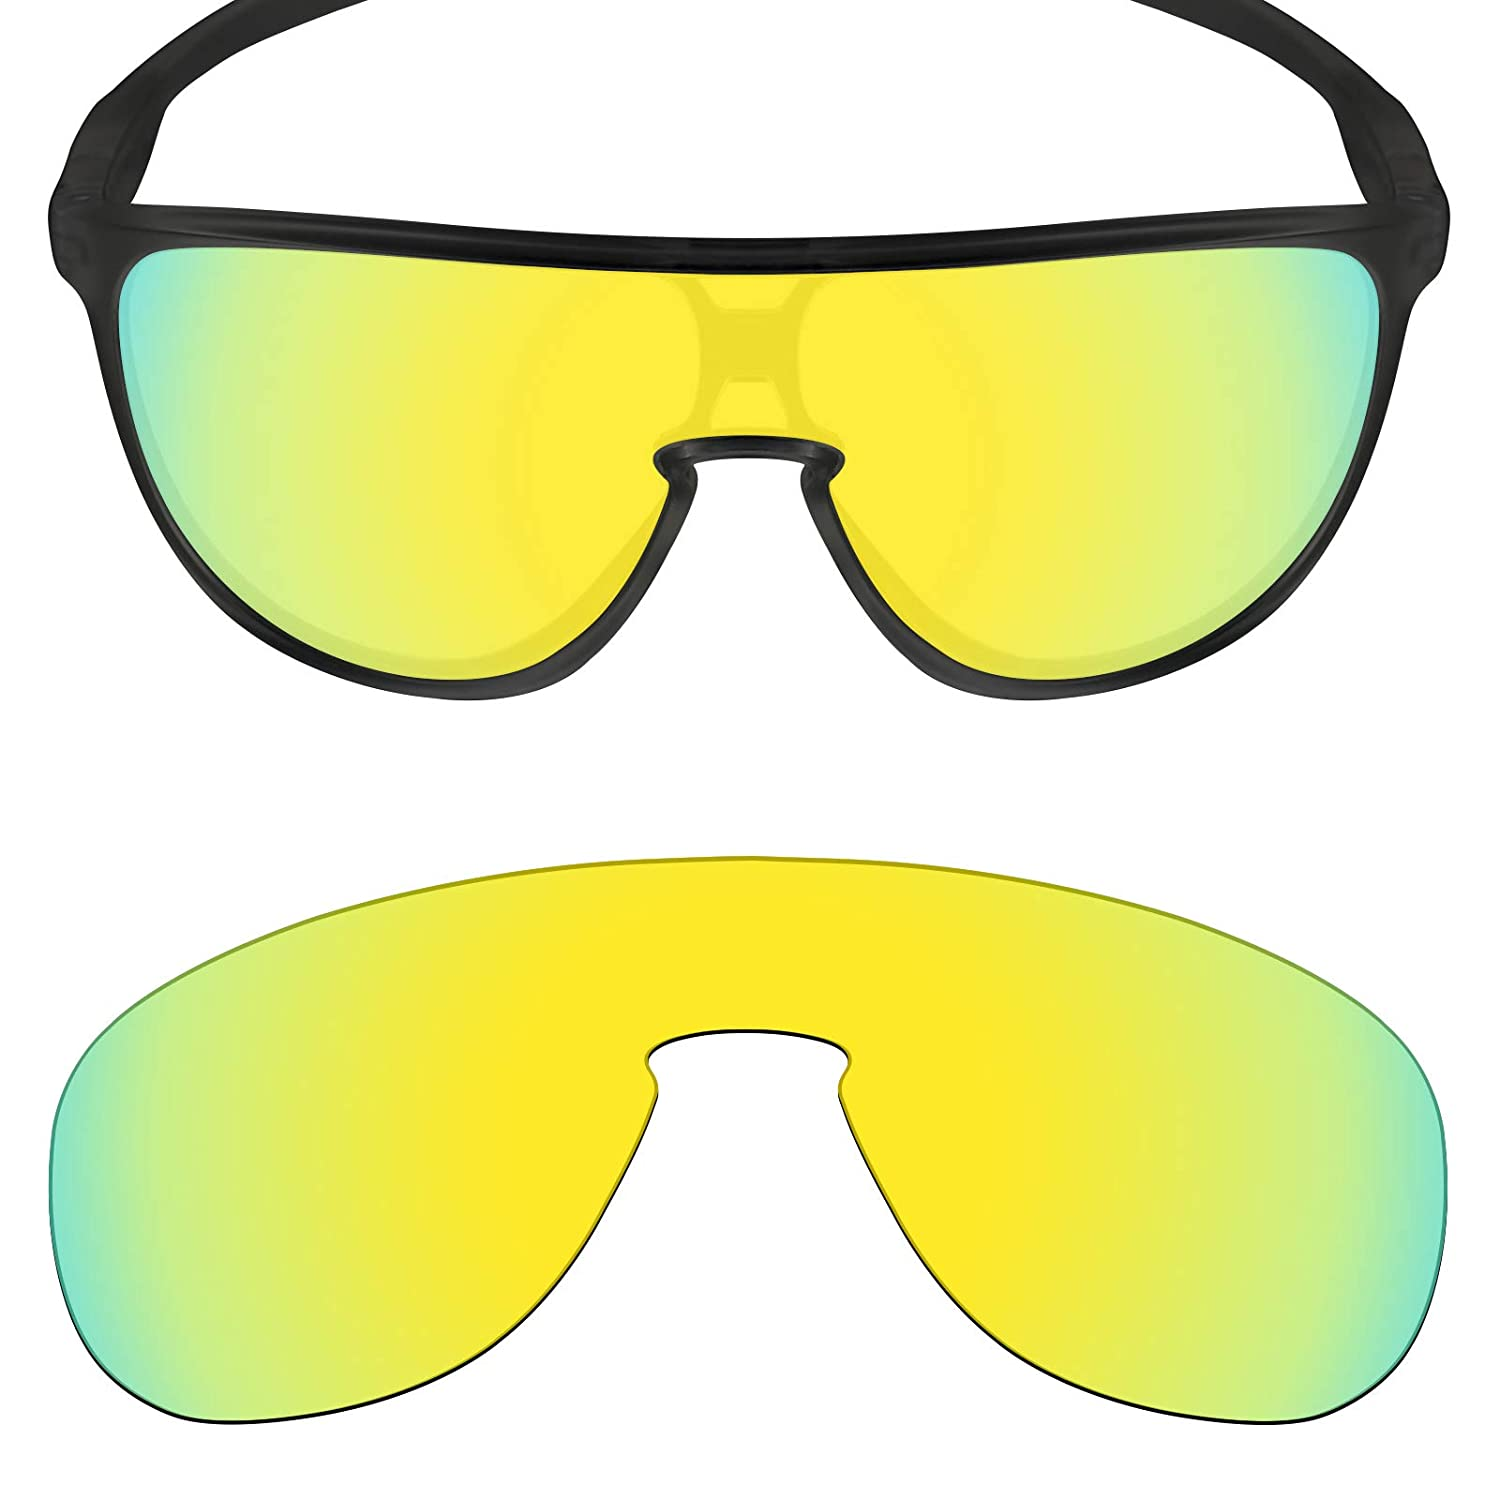 4158580914b7 Amazon.com: Mryok Polarized Replacement Lenses for Oakley Trillbe - 24K  Gold: Clothing